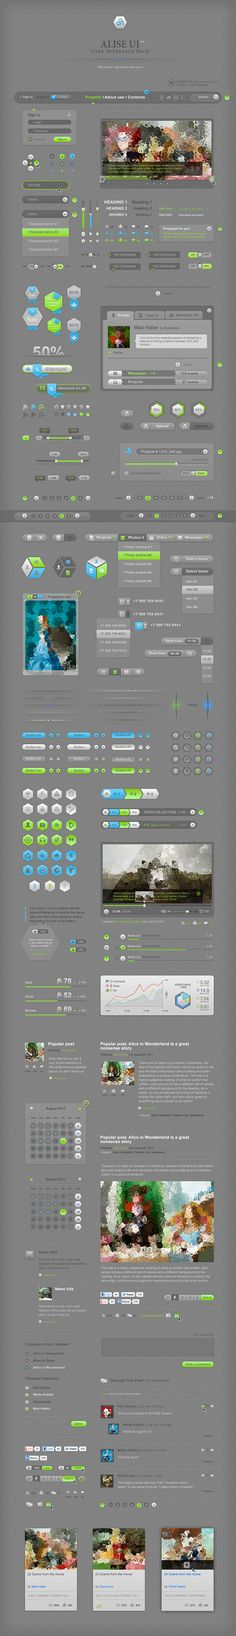 Alise UI / User Interface Pack by Vadim Pleshkov, via Behance